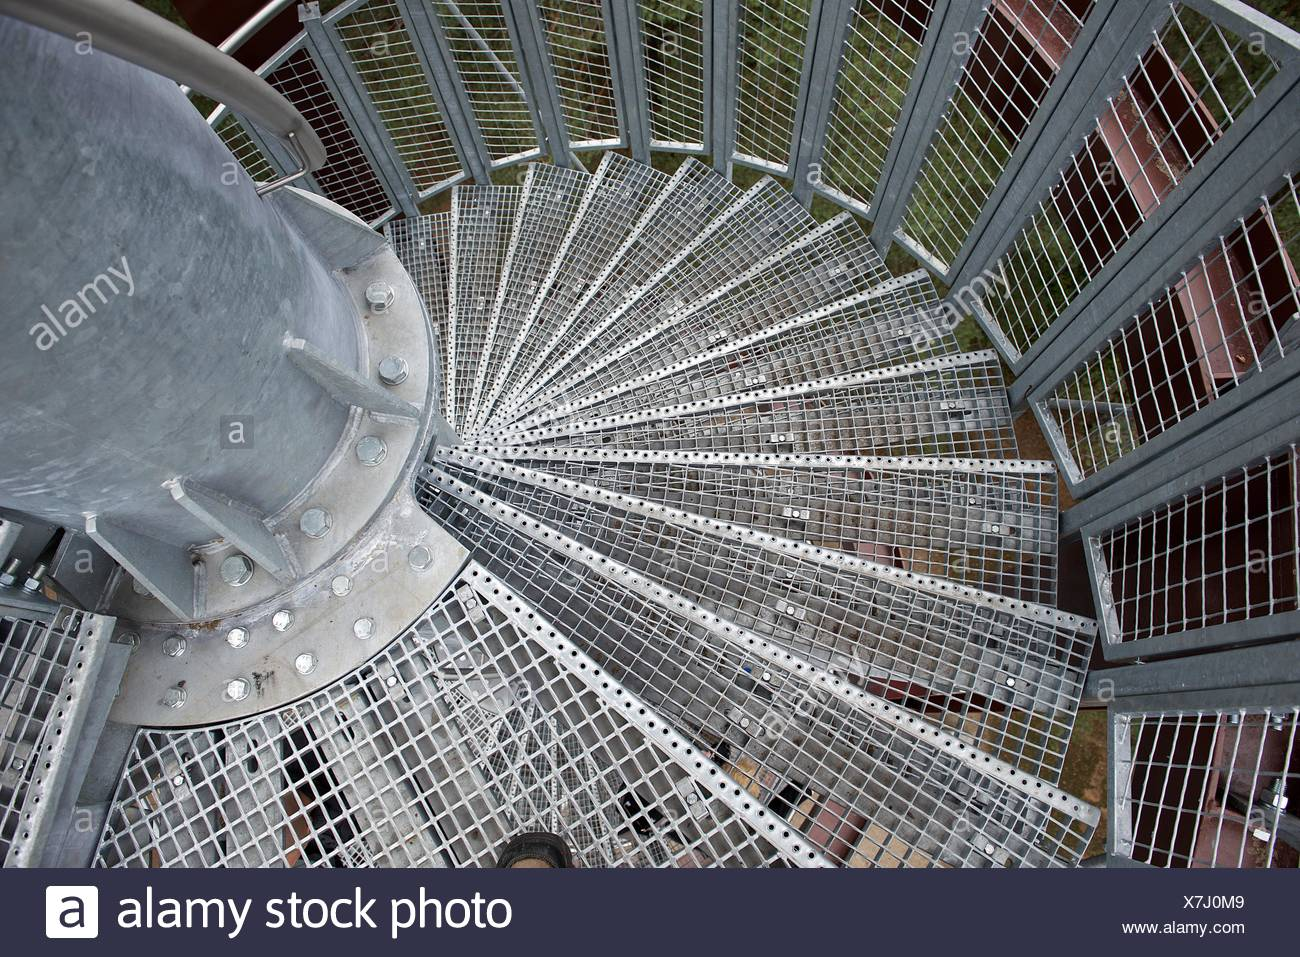 Personal perspective of a Metal spiral staircase - Stock Image